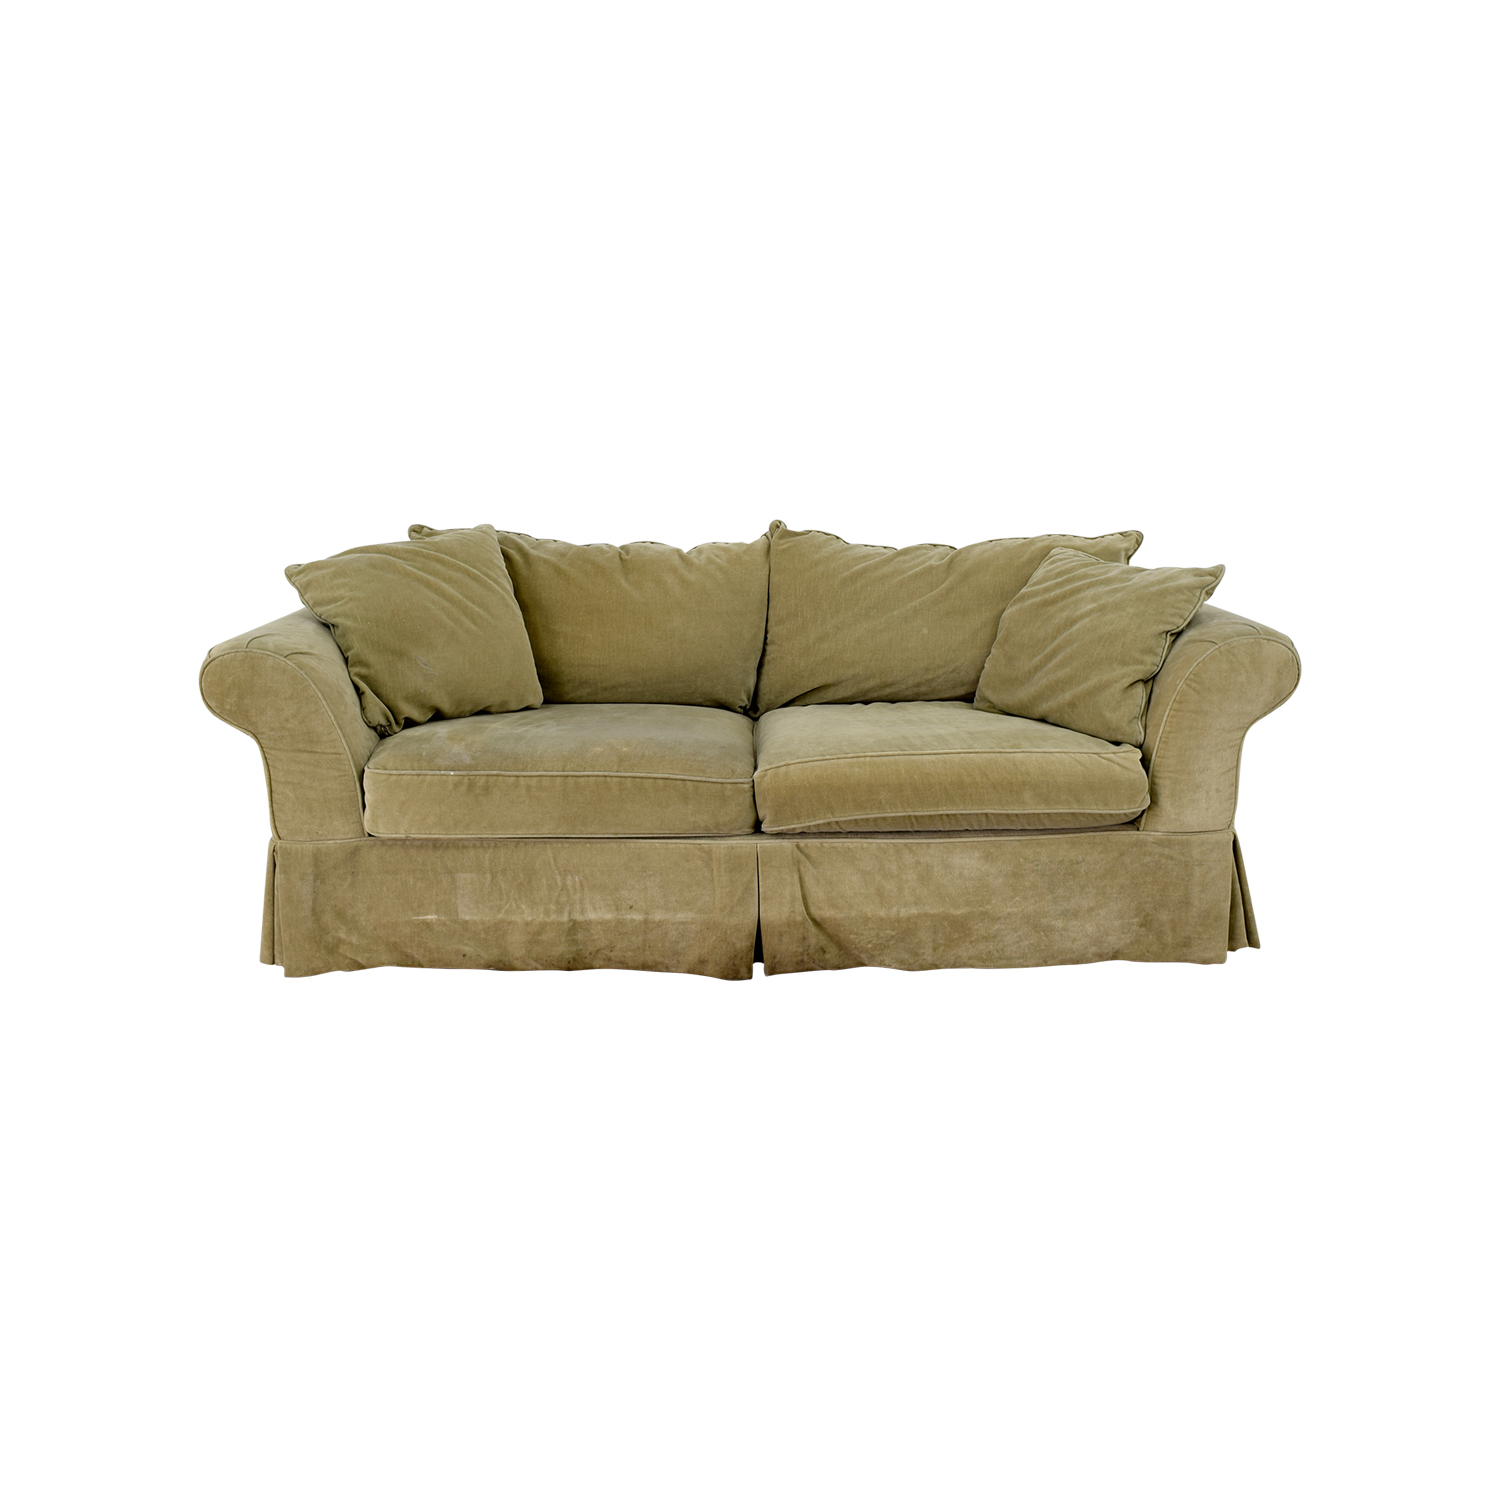 Groovy 90 Off Domain Domain Green Skirted Couch Sofas Pabps2019 Chair Design Images Pabps2019Com